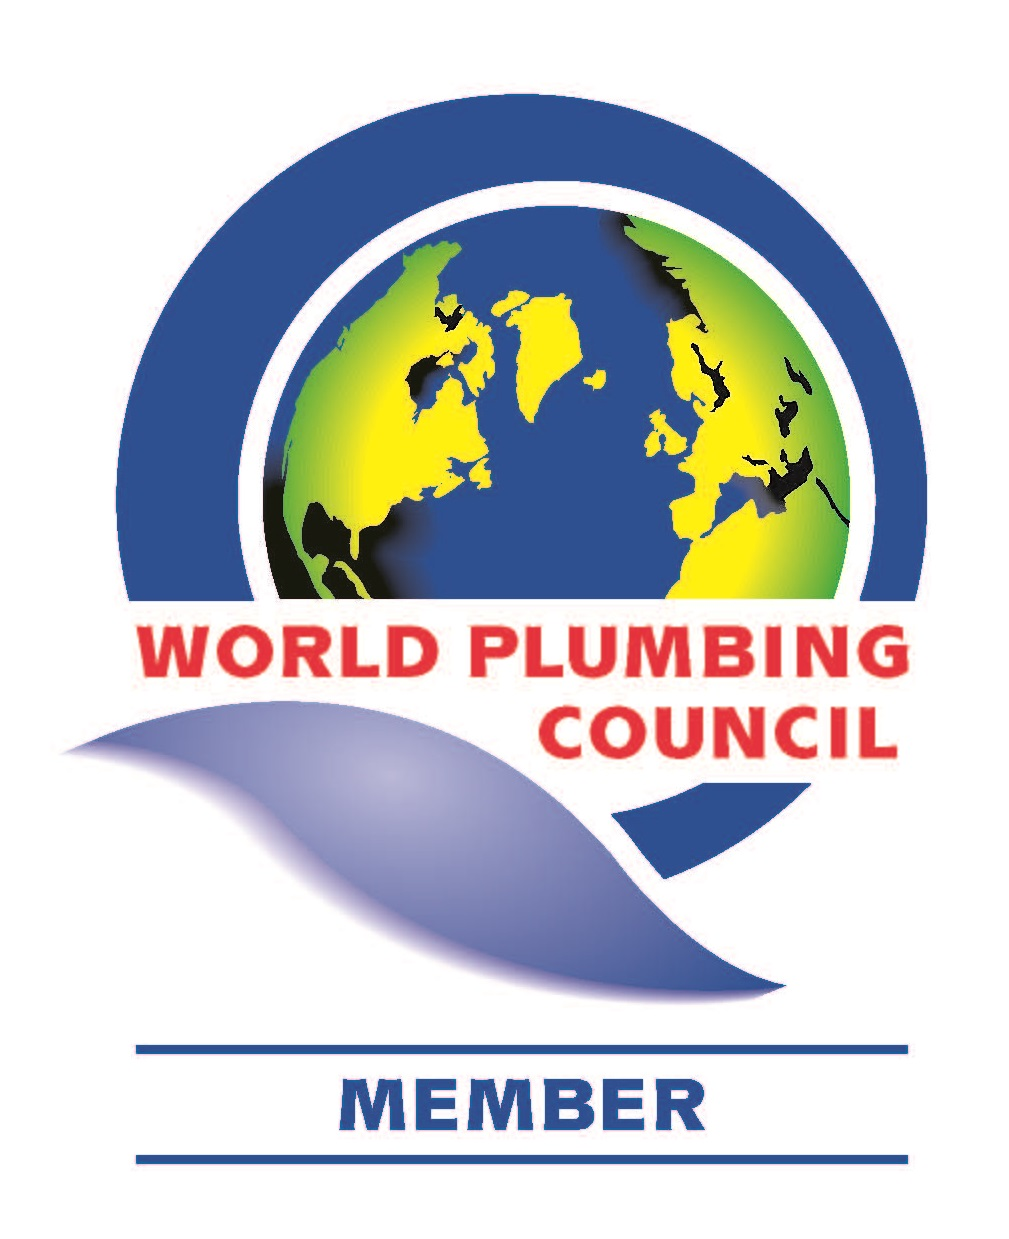 World Plumbing Council Member